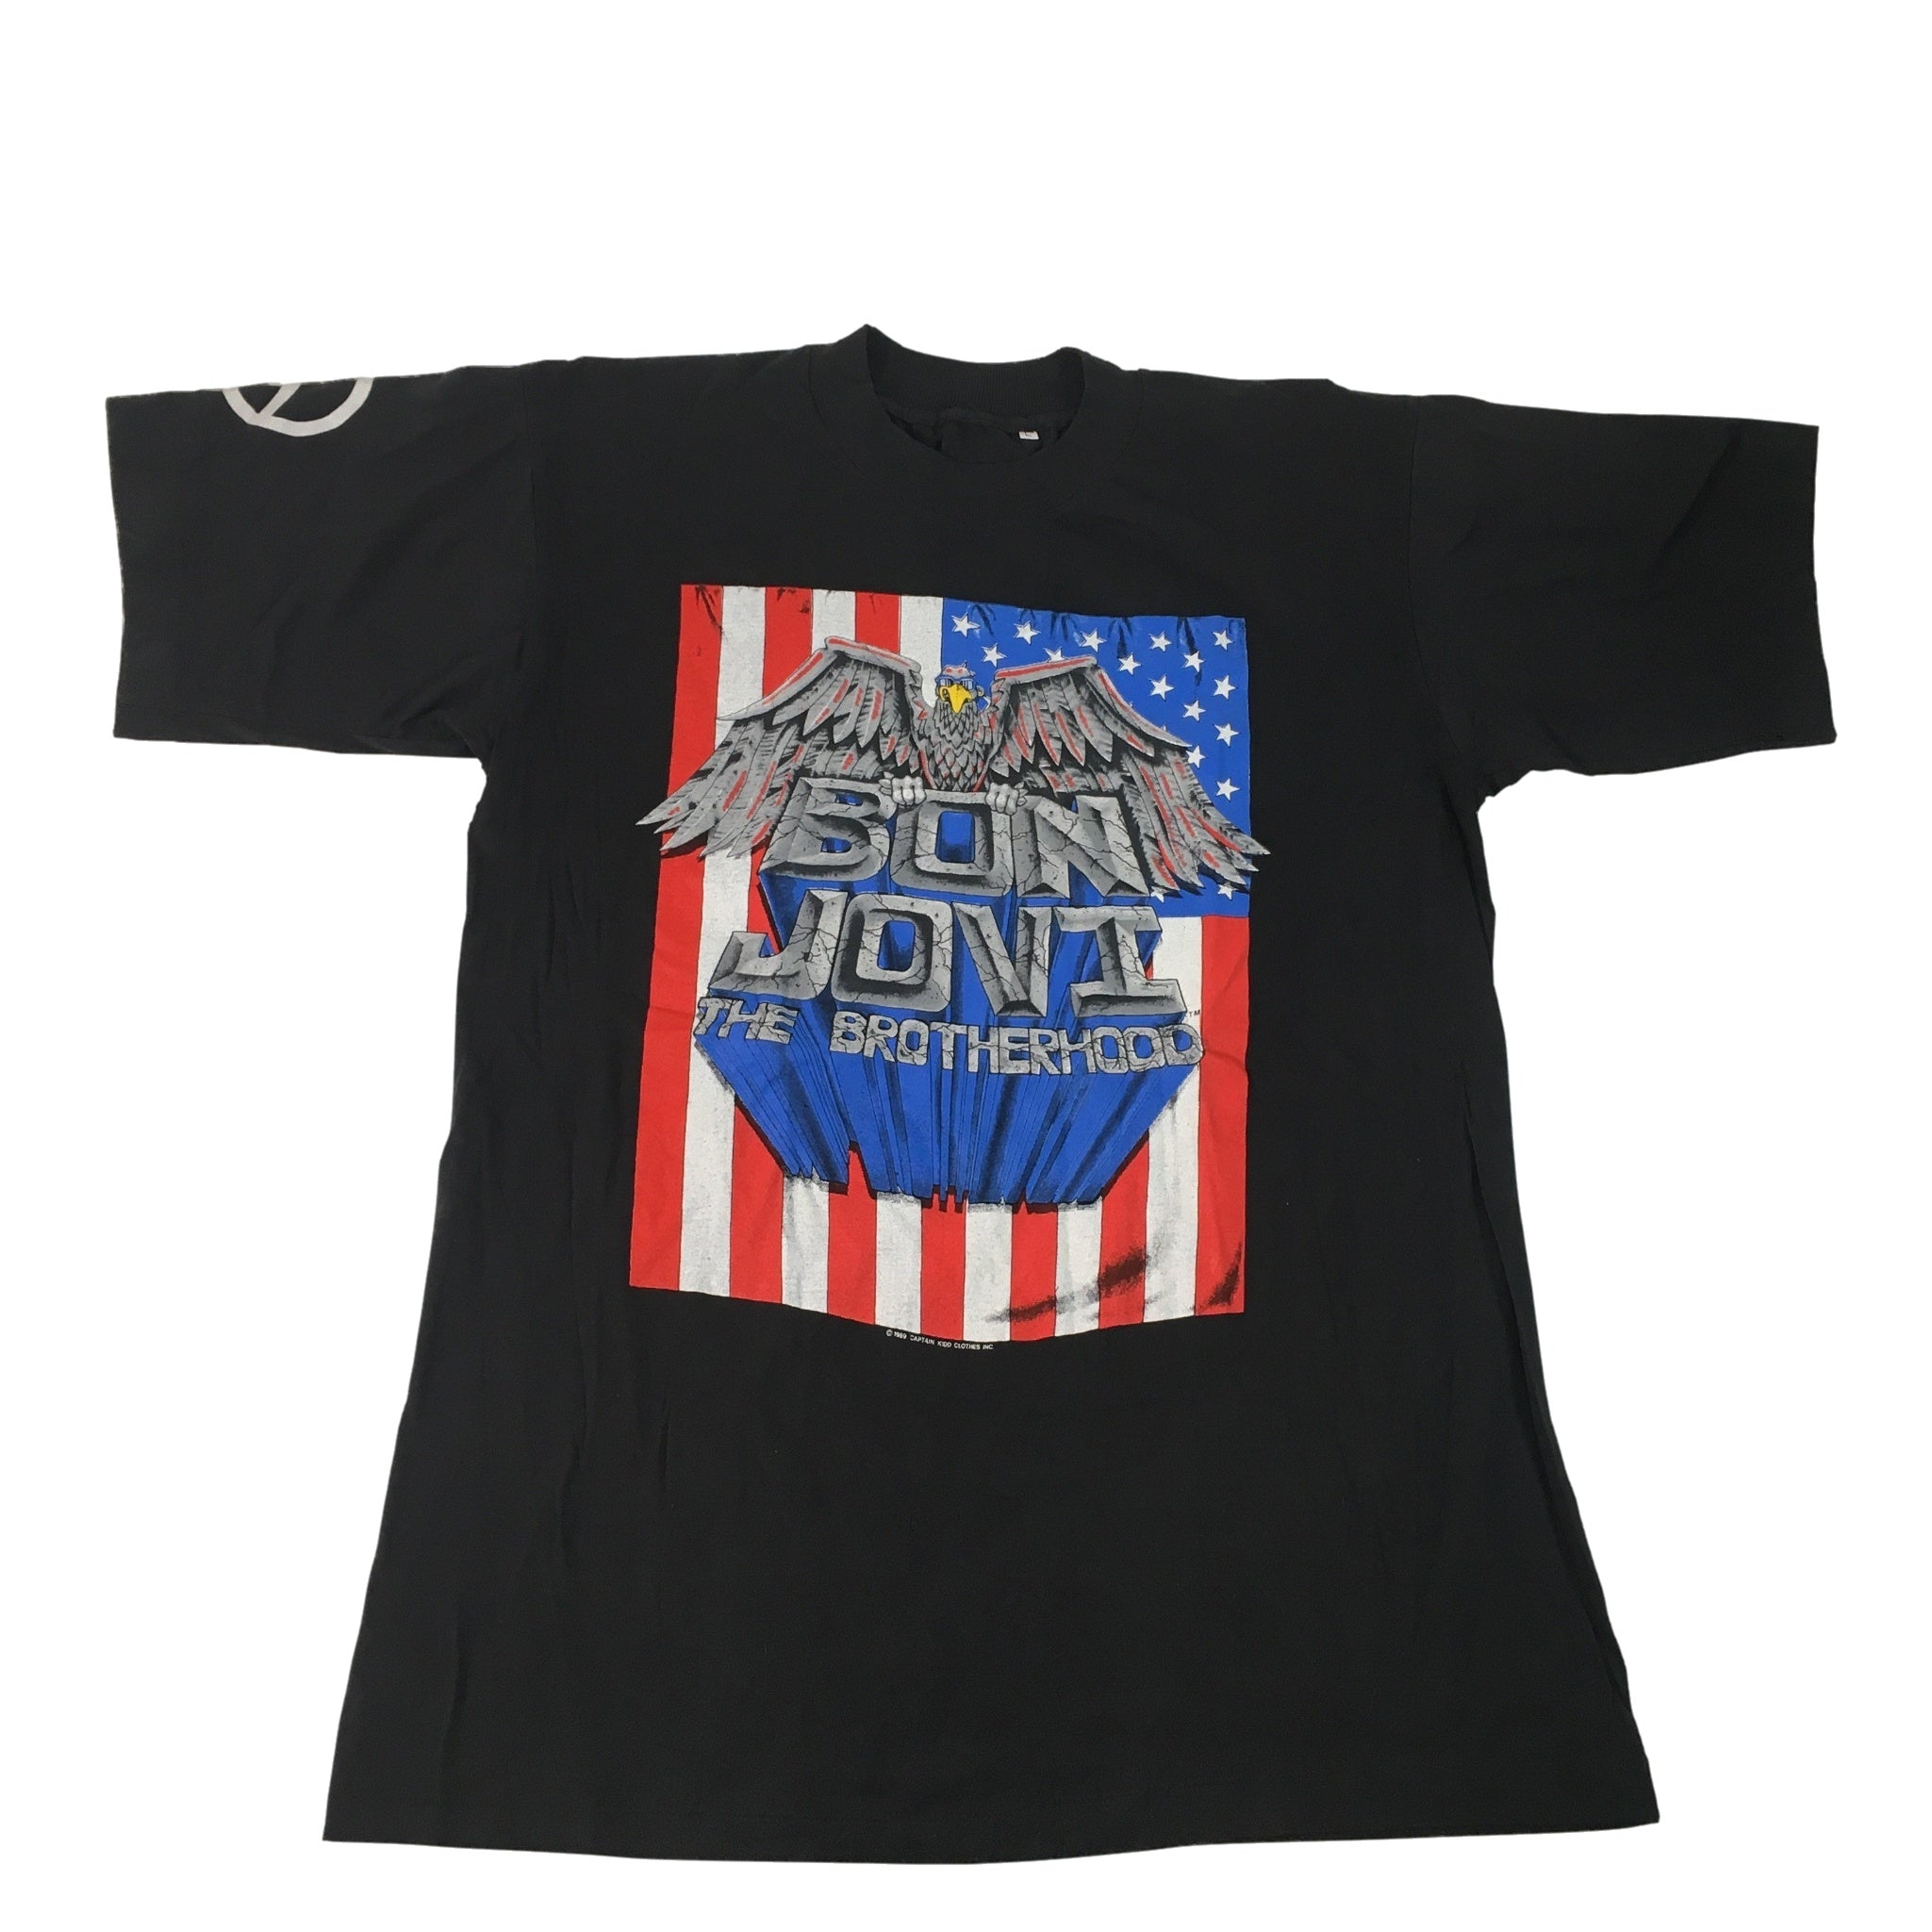 "Vintage Bon Jovi ""The Brotherhood"" T-Shirt"